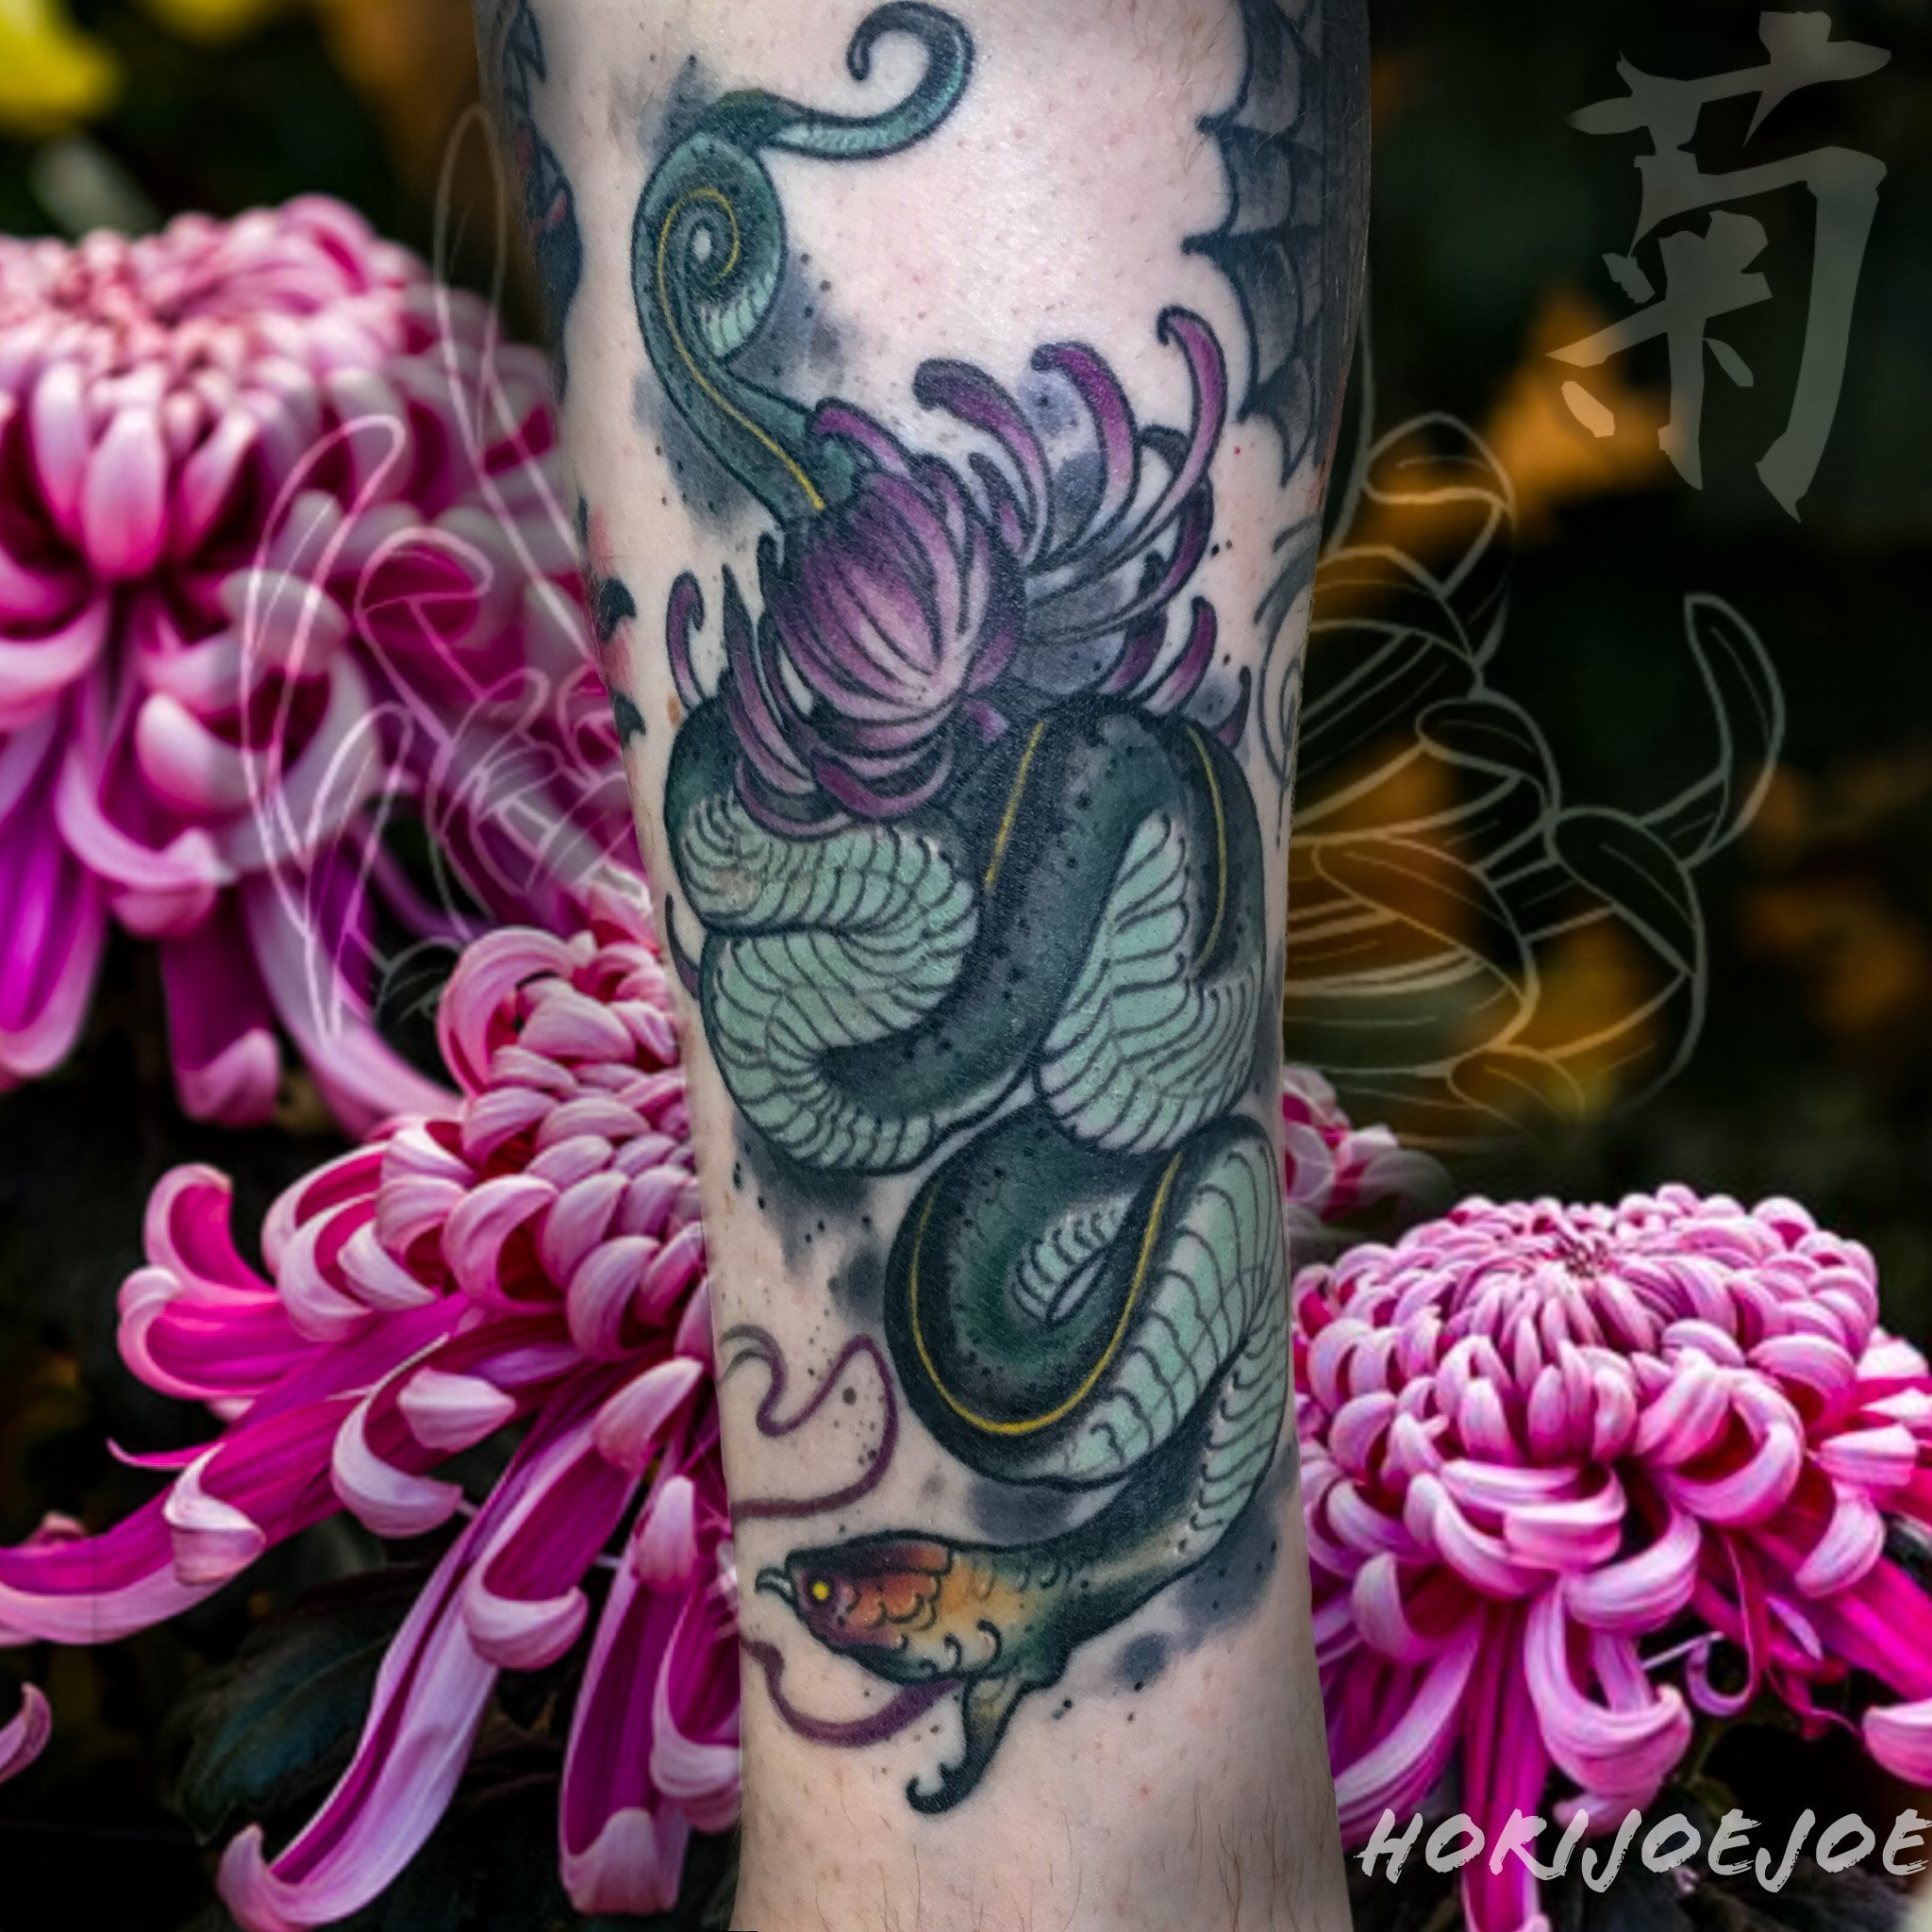 Japanese Tattoos Studio City Tattoo And Los Angeles Body Piercing